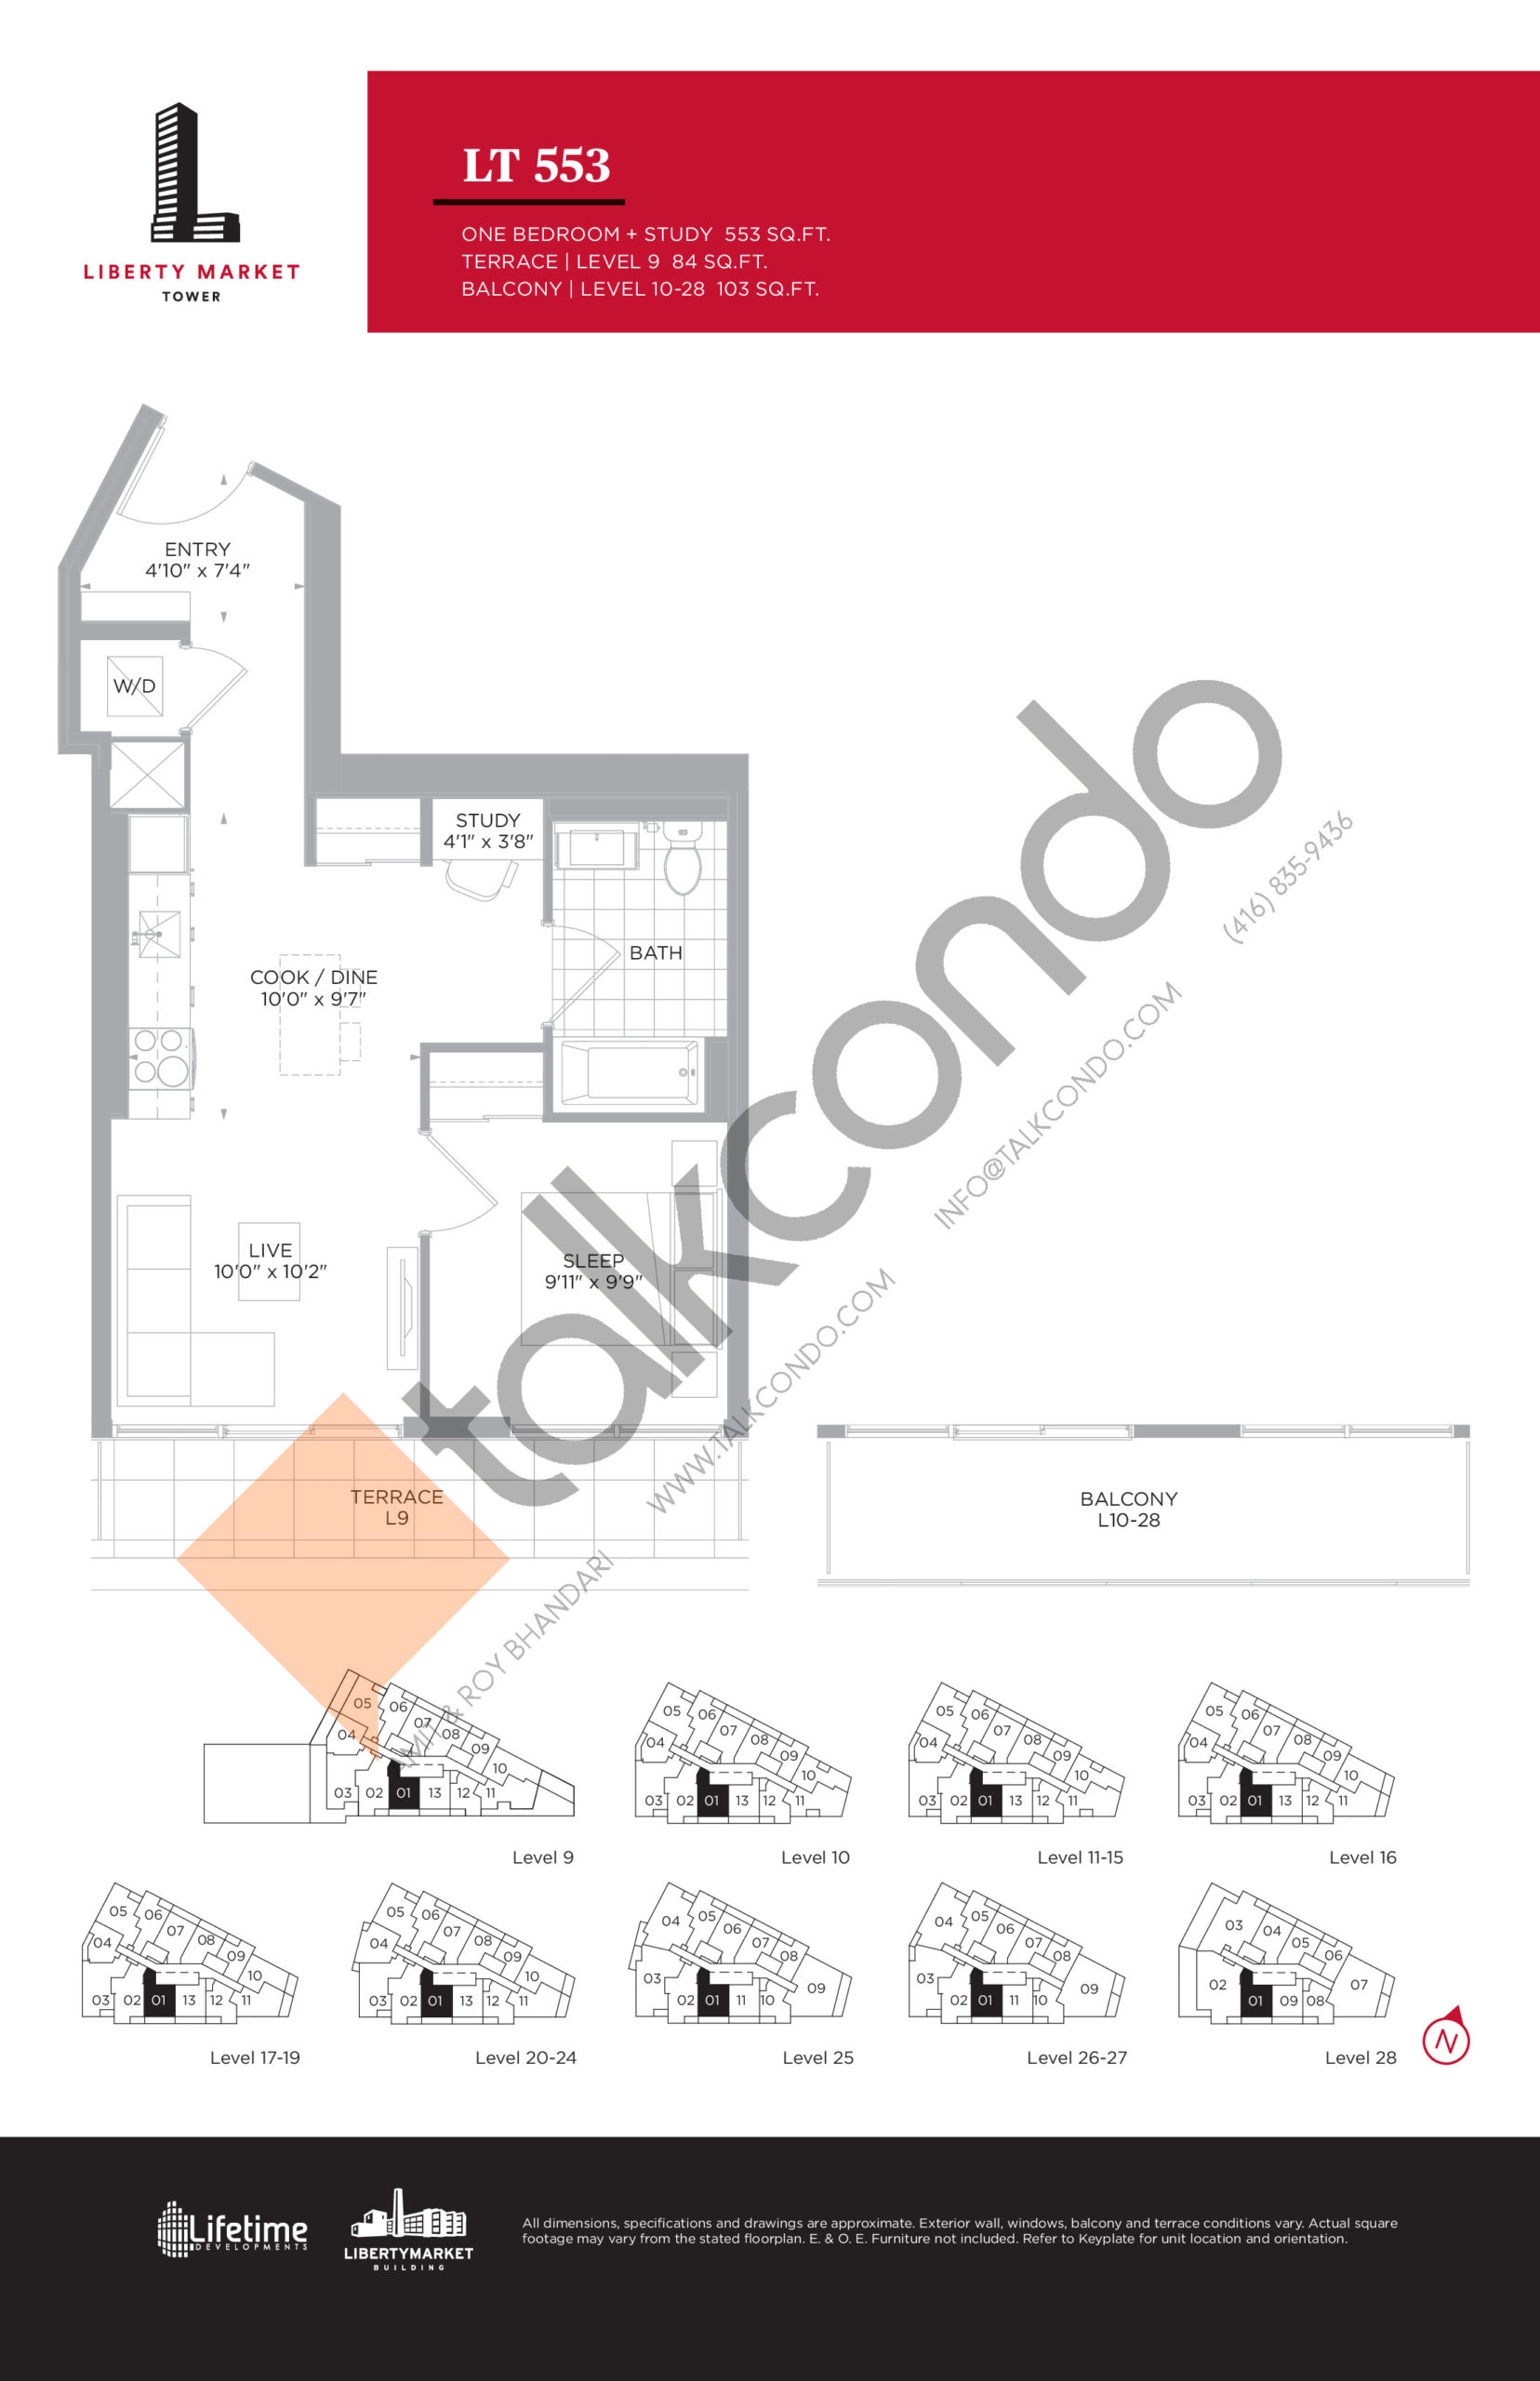 LT 553 - Terrace Collection Floor Plan at Liberty Market Tower Condos - 553 sq.ft